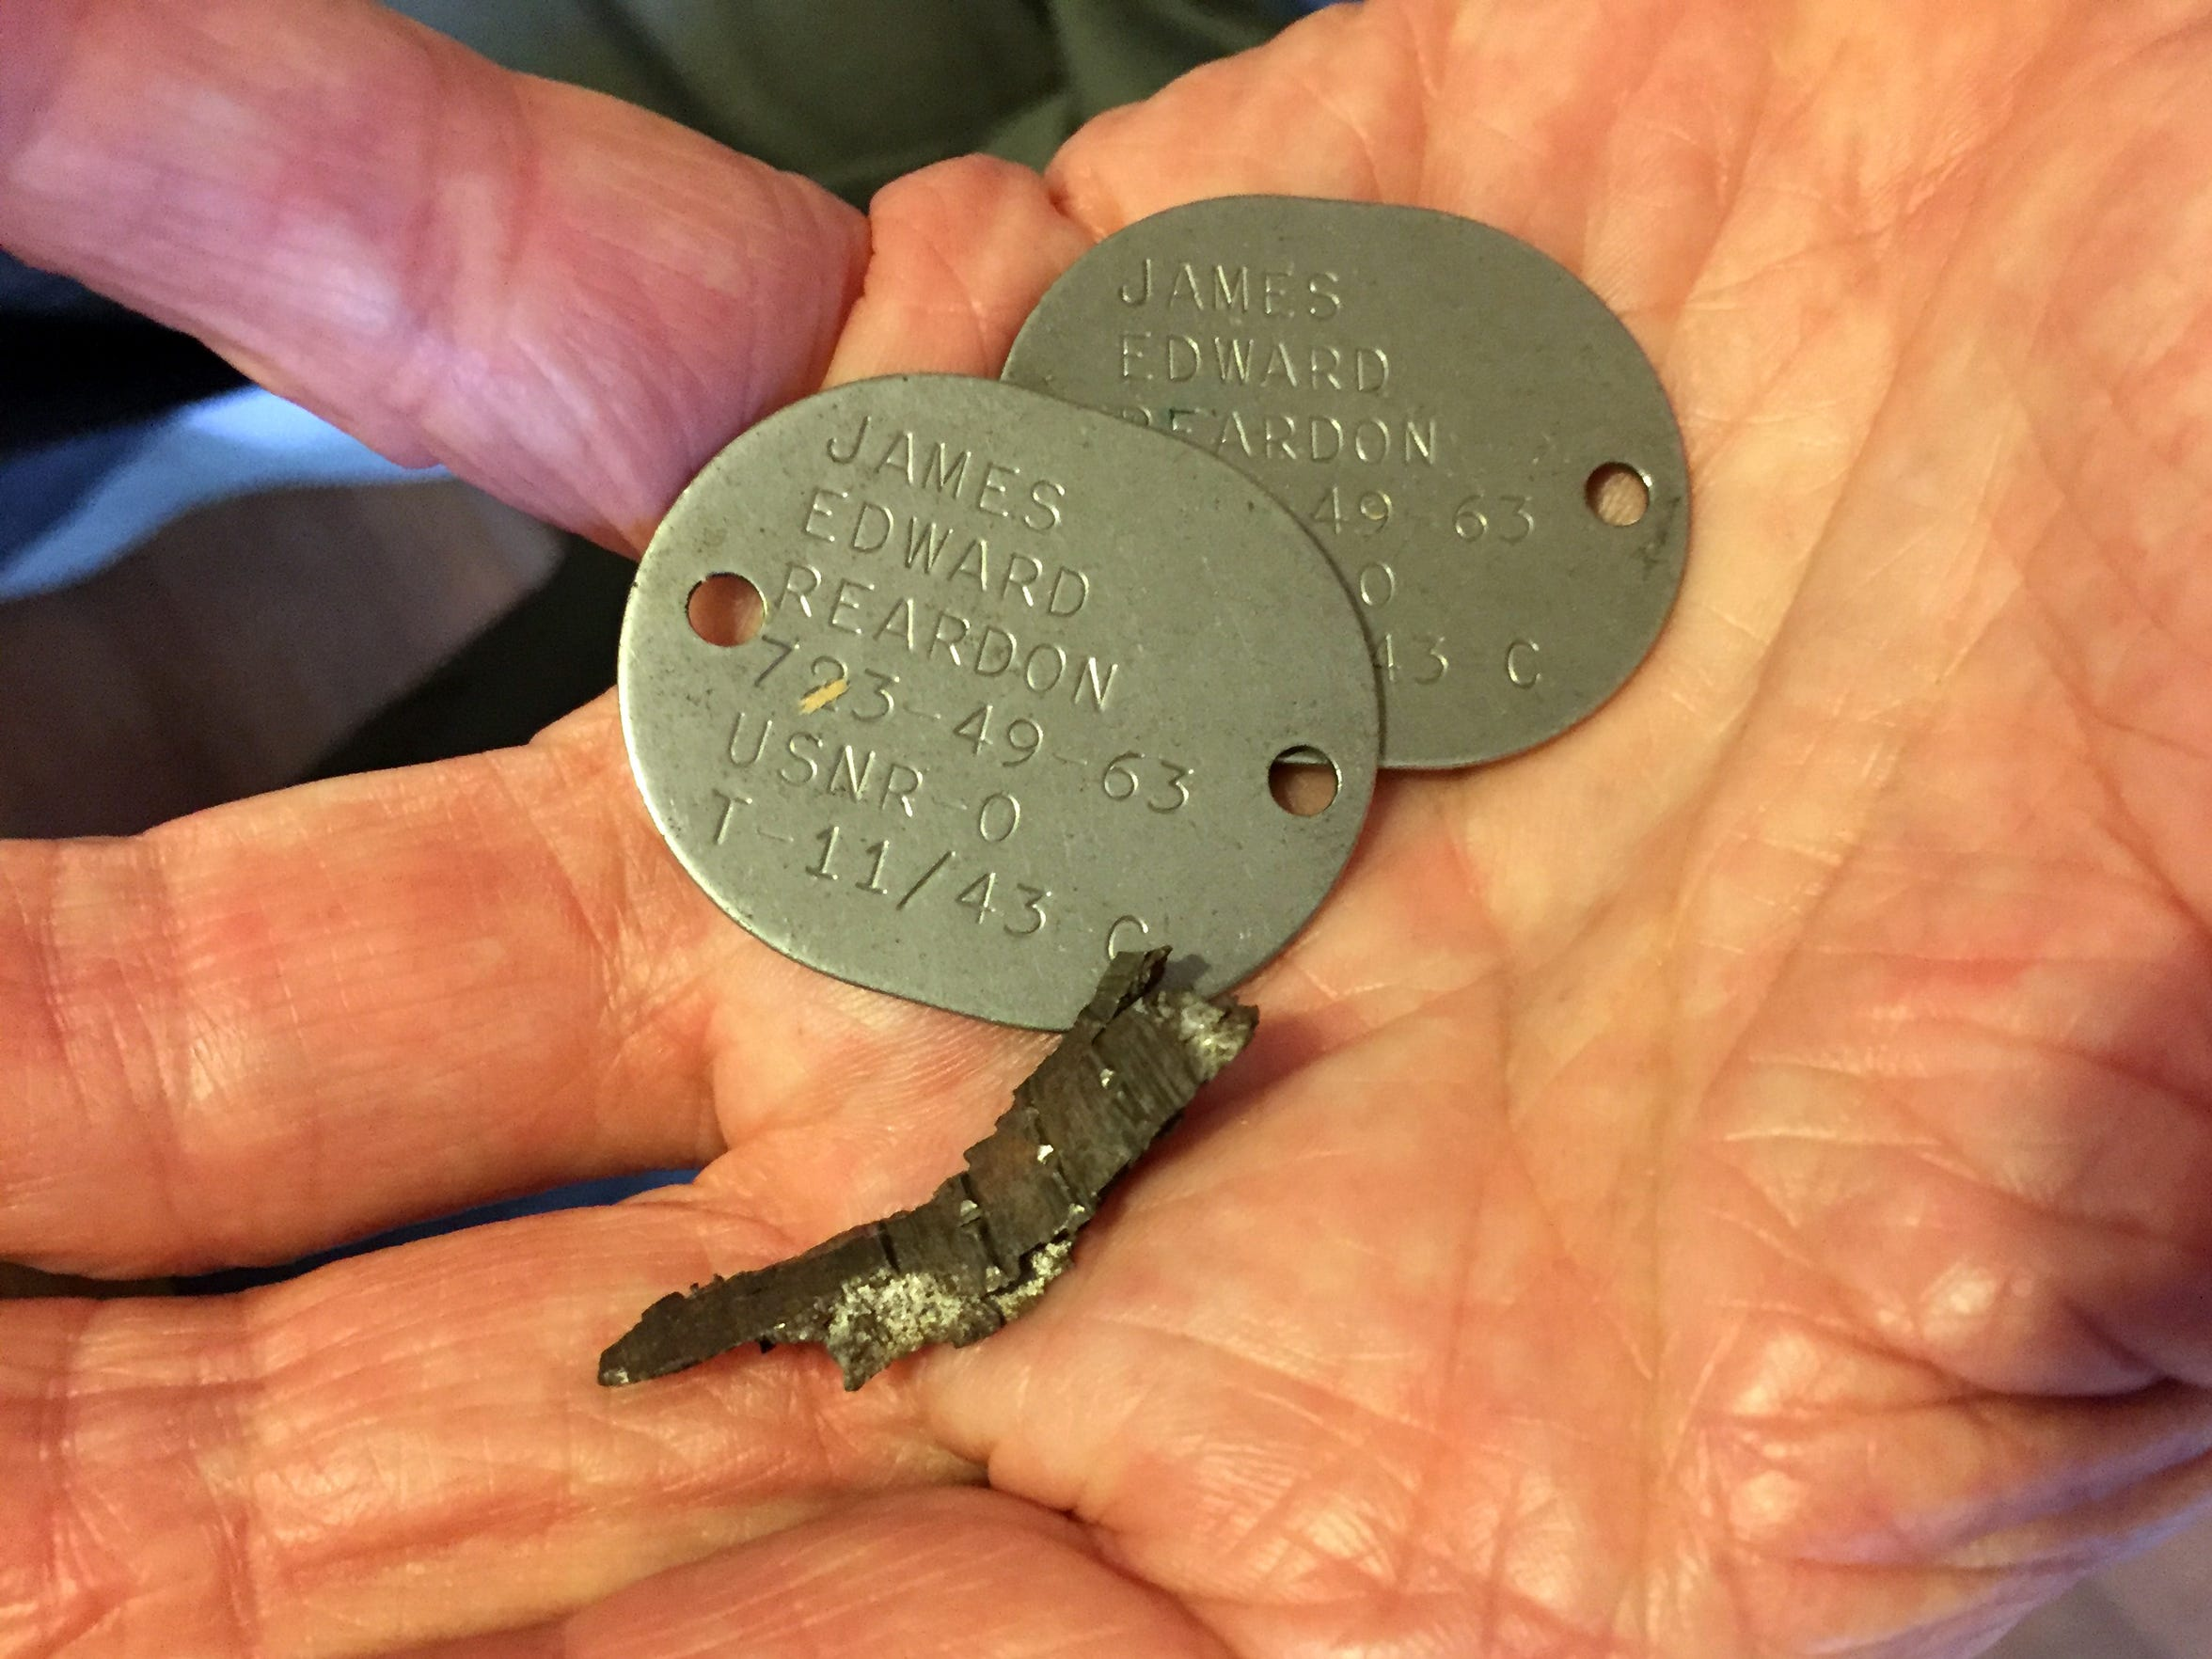 James Reardon holds his dog tags from WWII with a piece